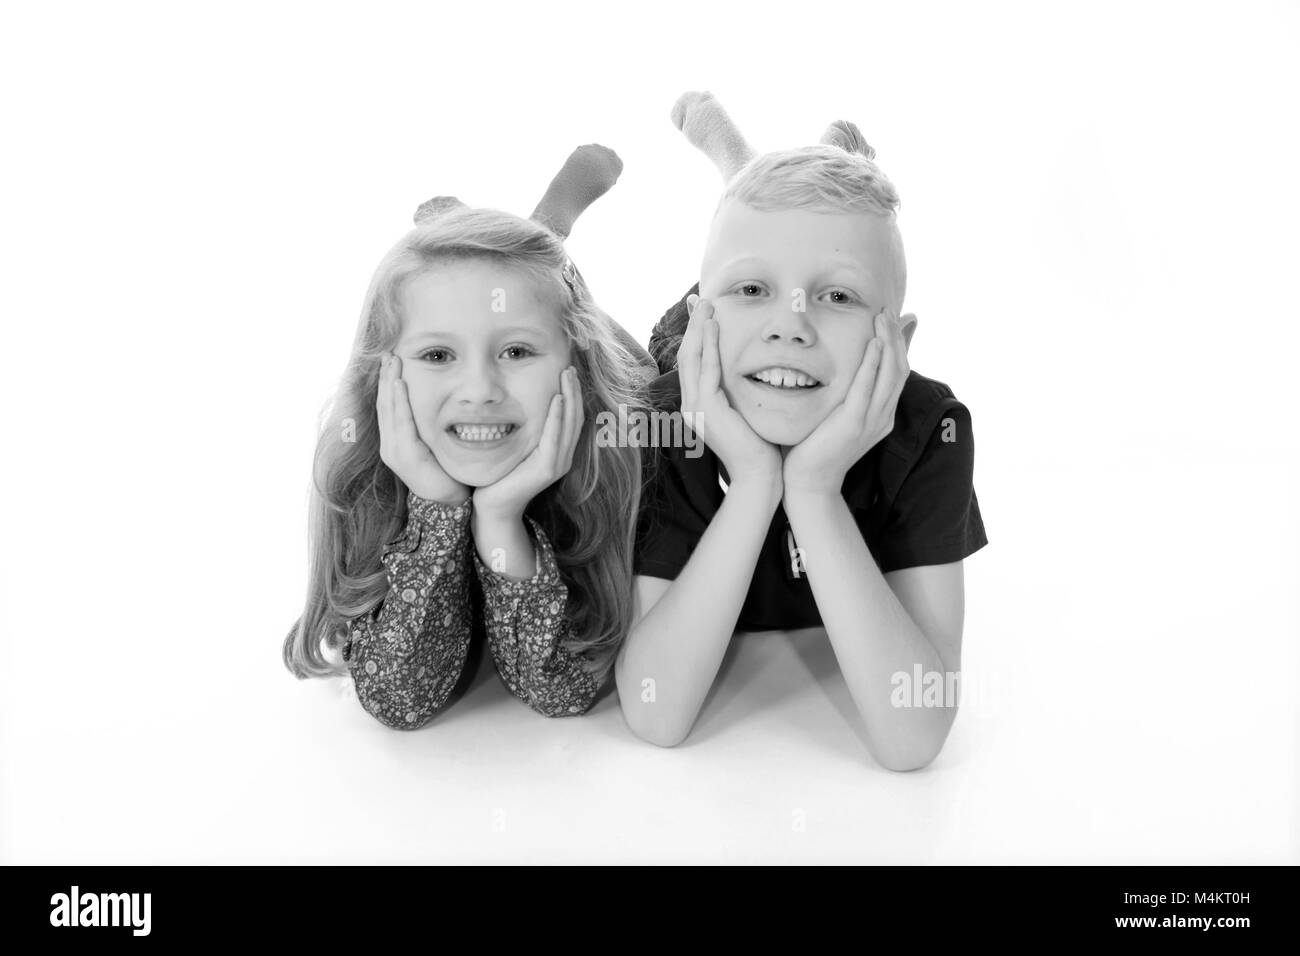 brother and sister, laughing and having fun, happy childhood - Stock Image